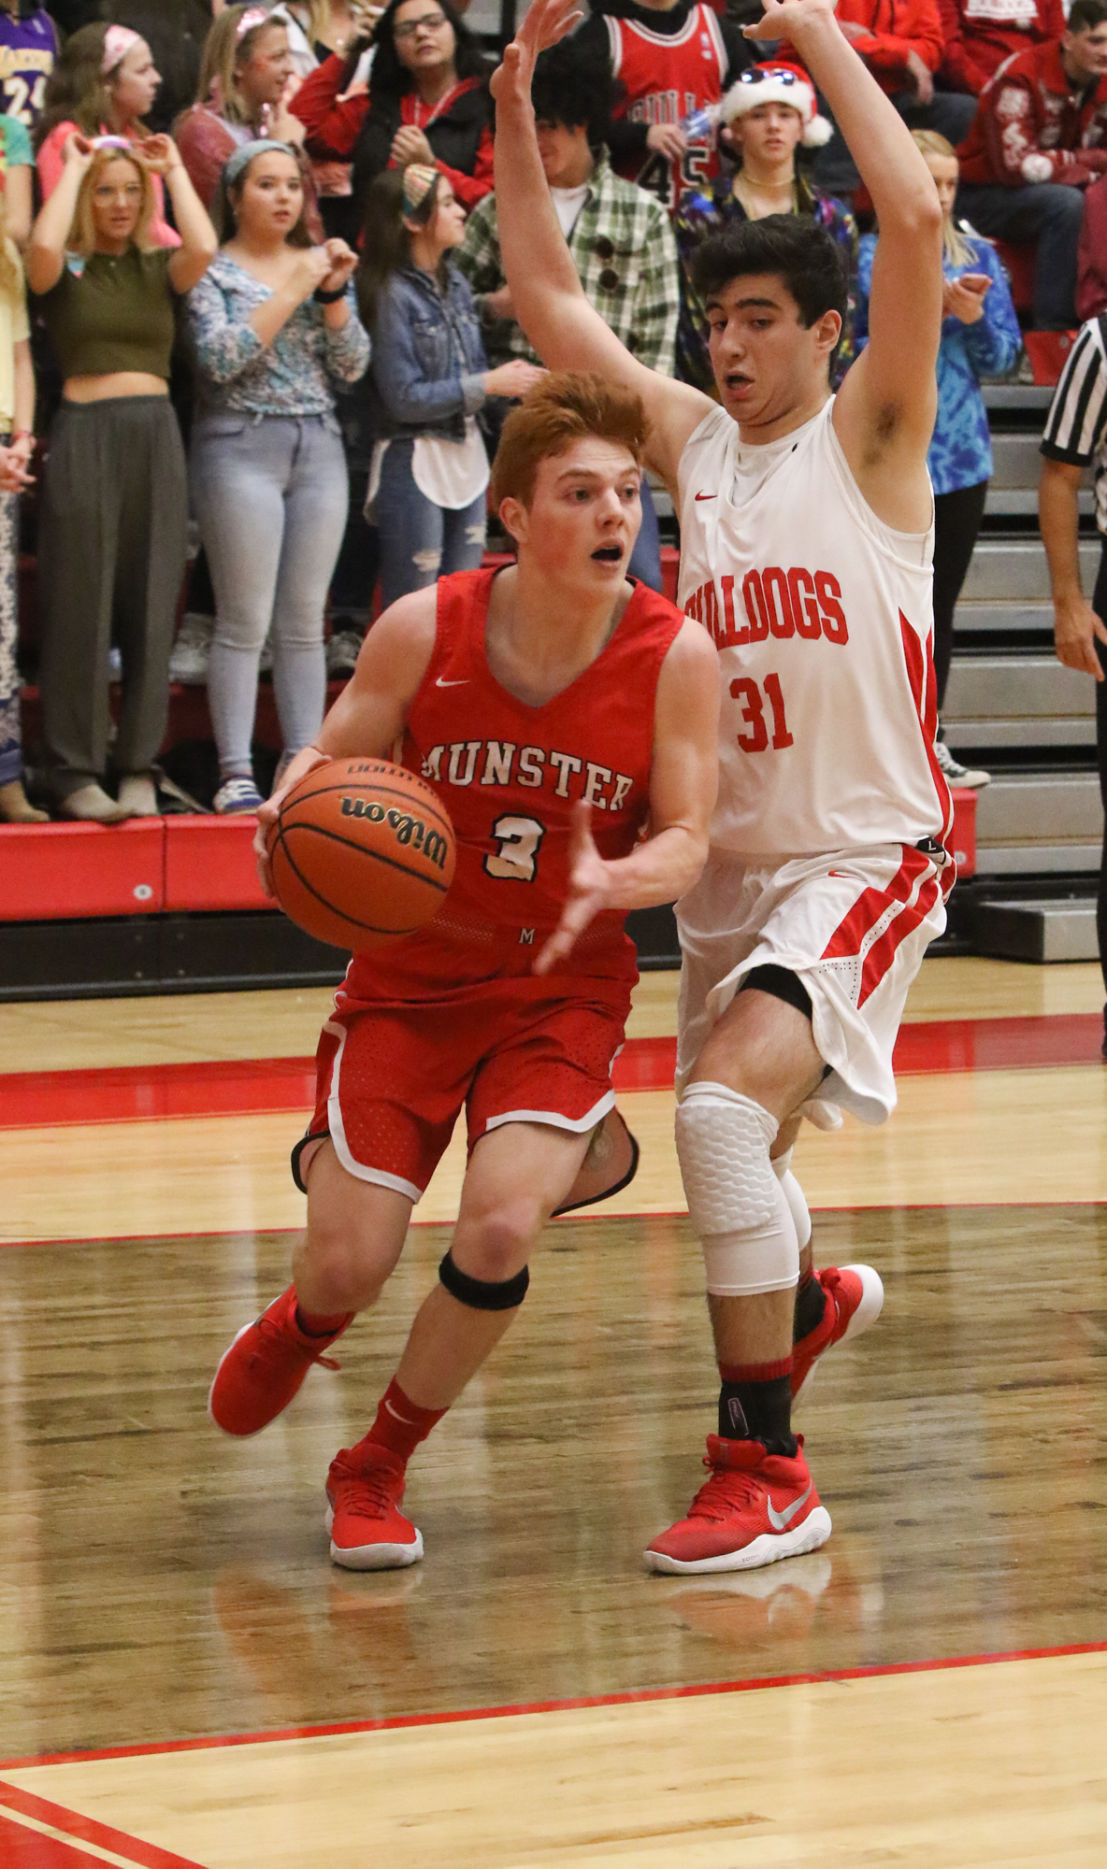 Boys basketball - Munster at Crown Point